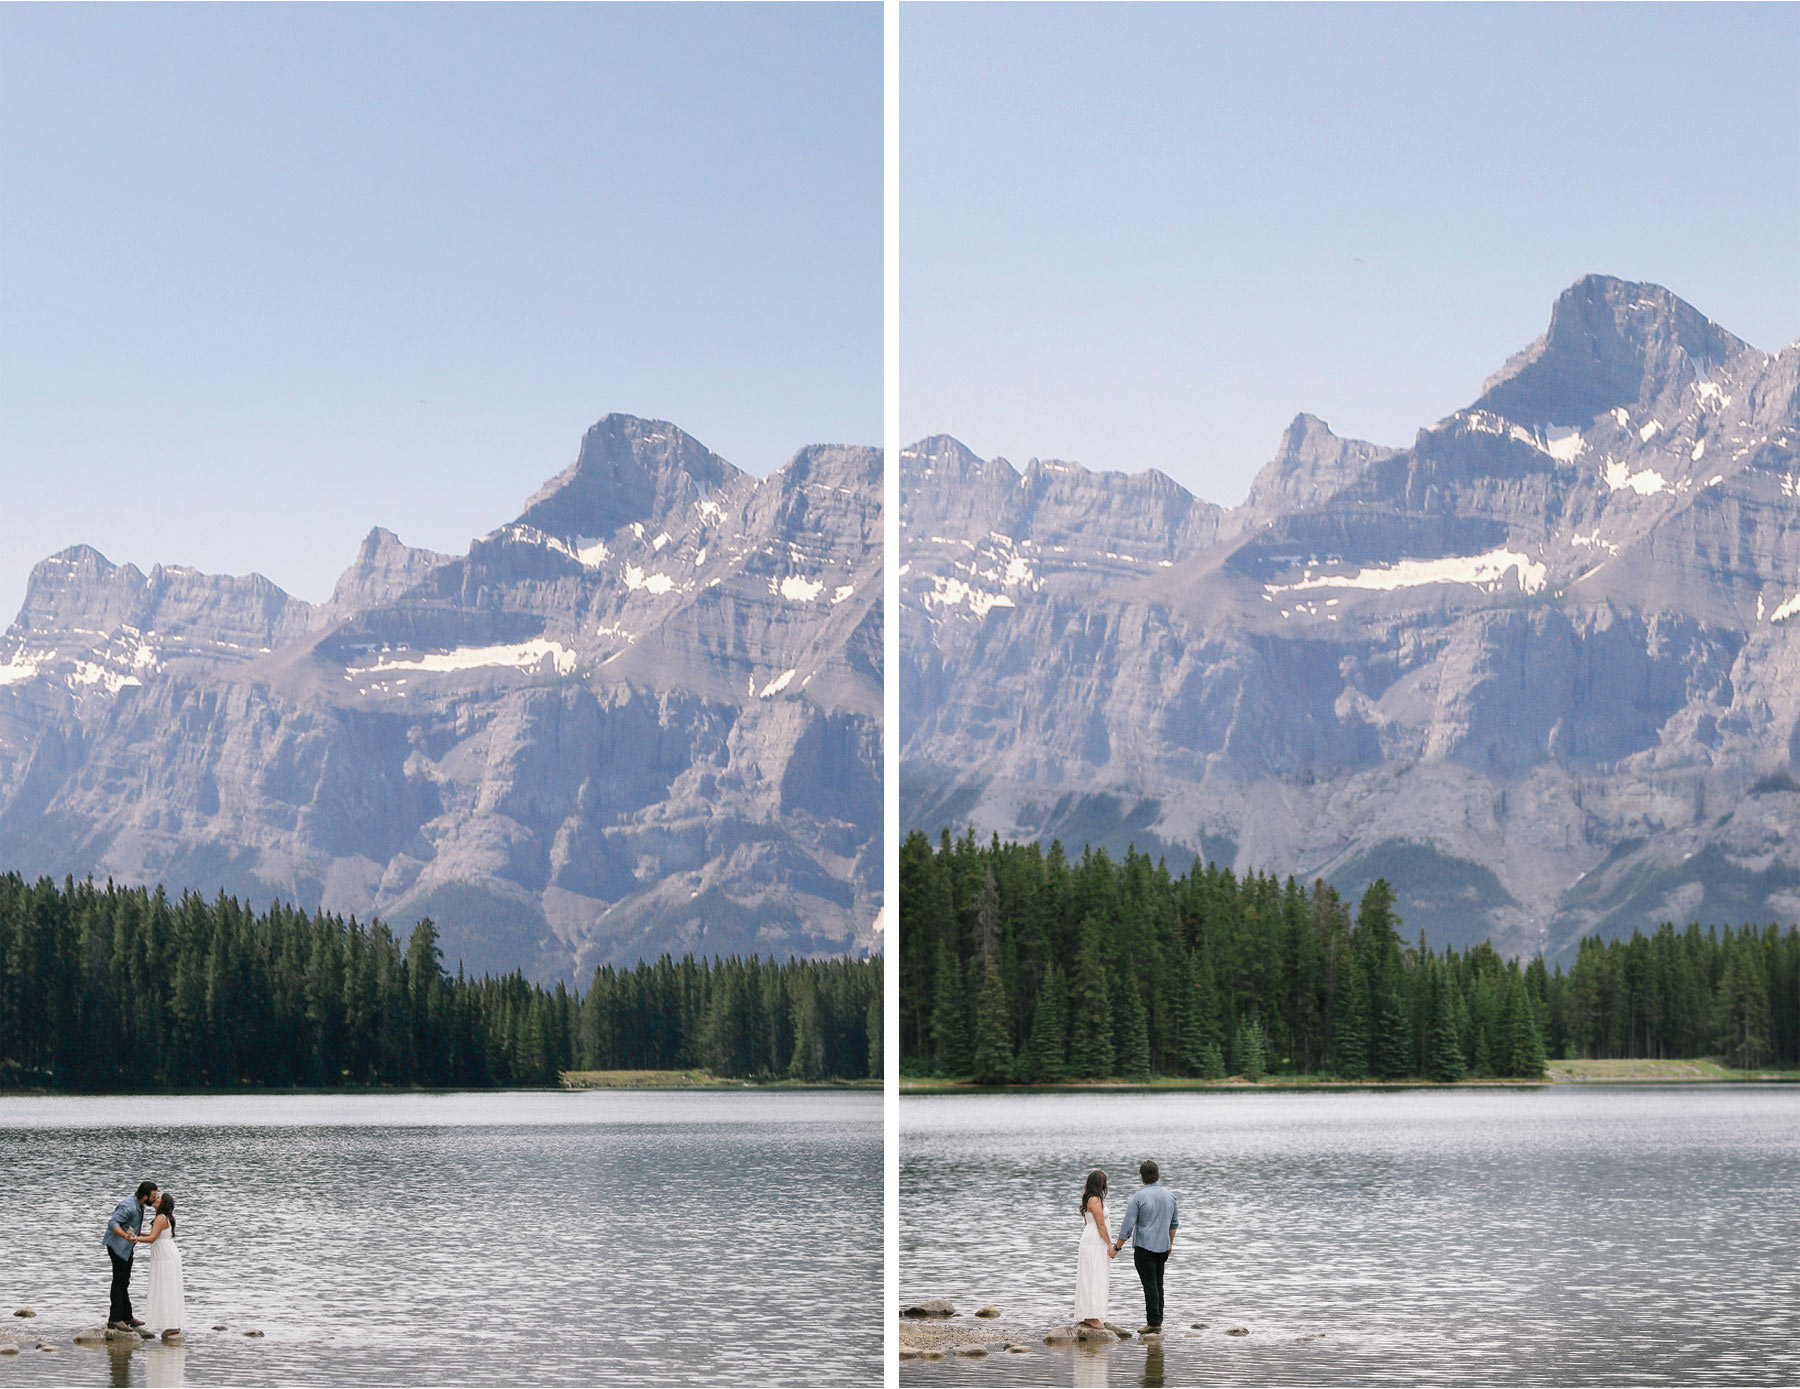 05-Banff-Canada-Engagement-Photography-by-Vick-Photography-Lake-Louise-Mountains-Lizz-and-Brady.jpg